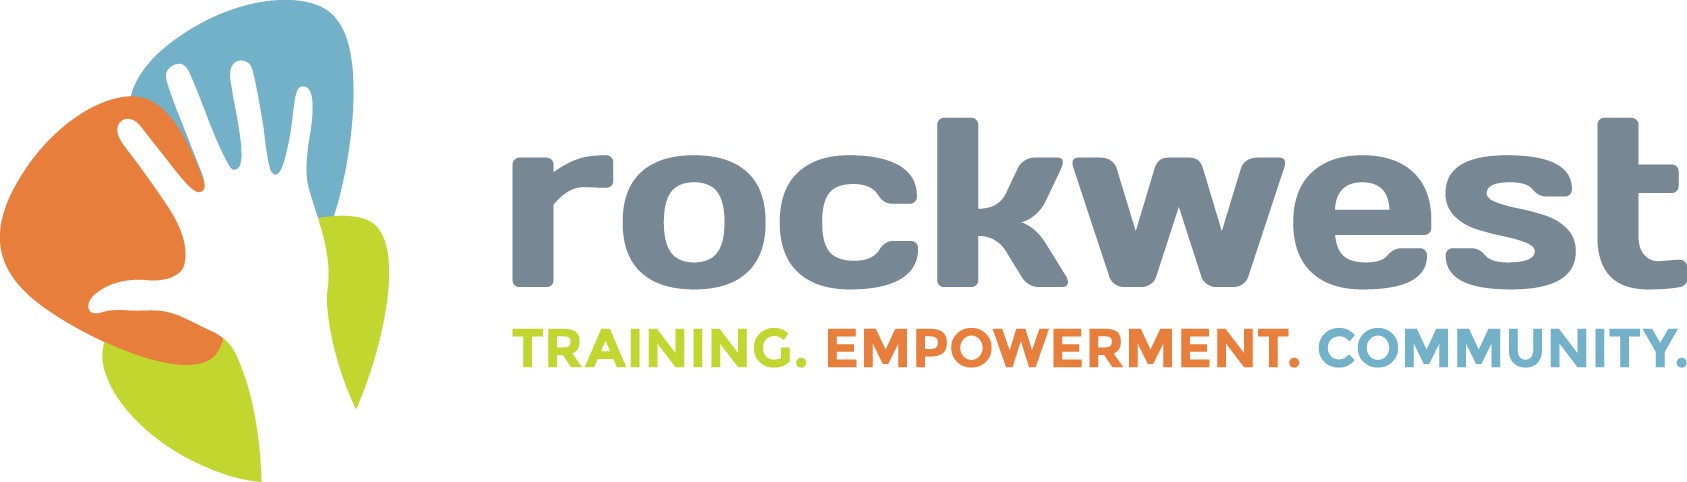 Rockwest Training Company